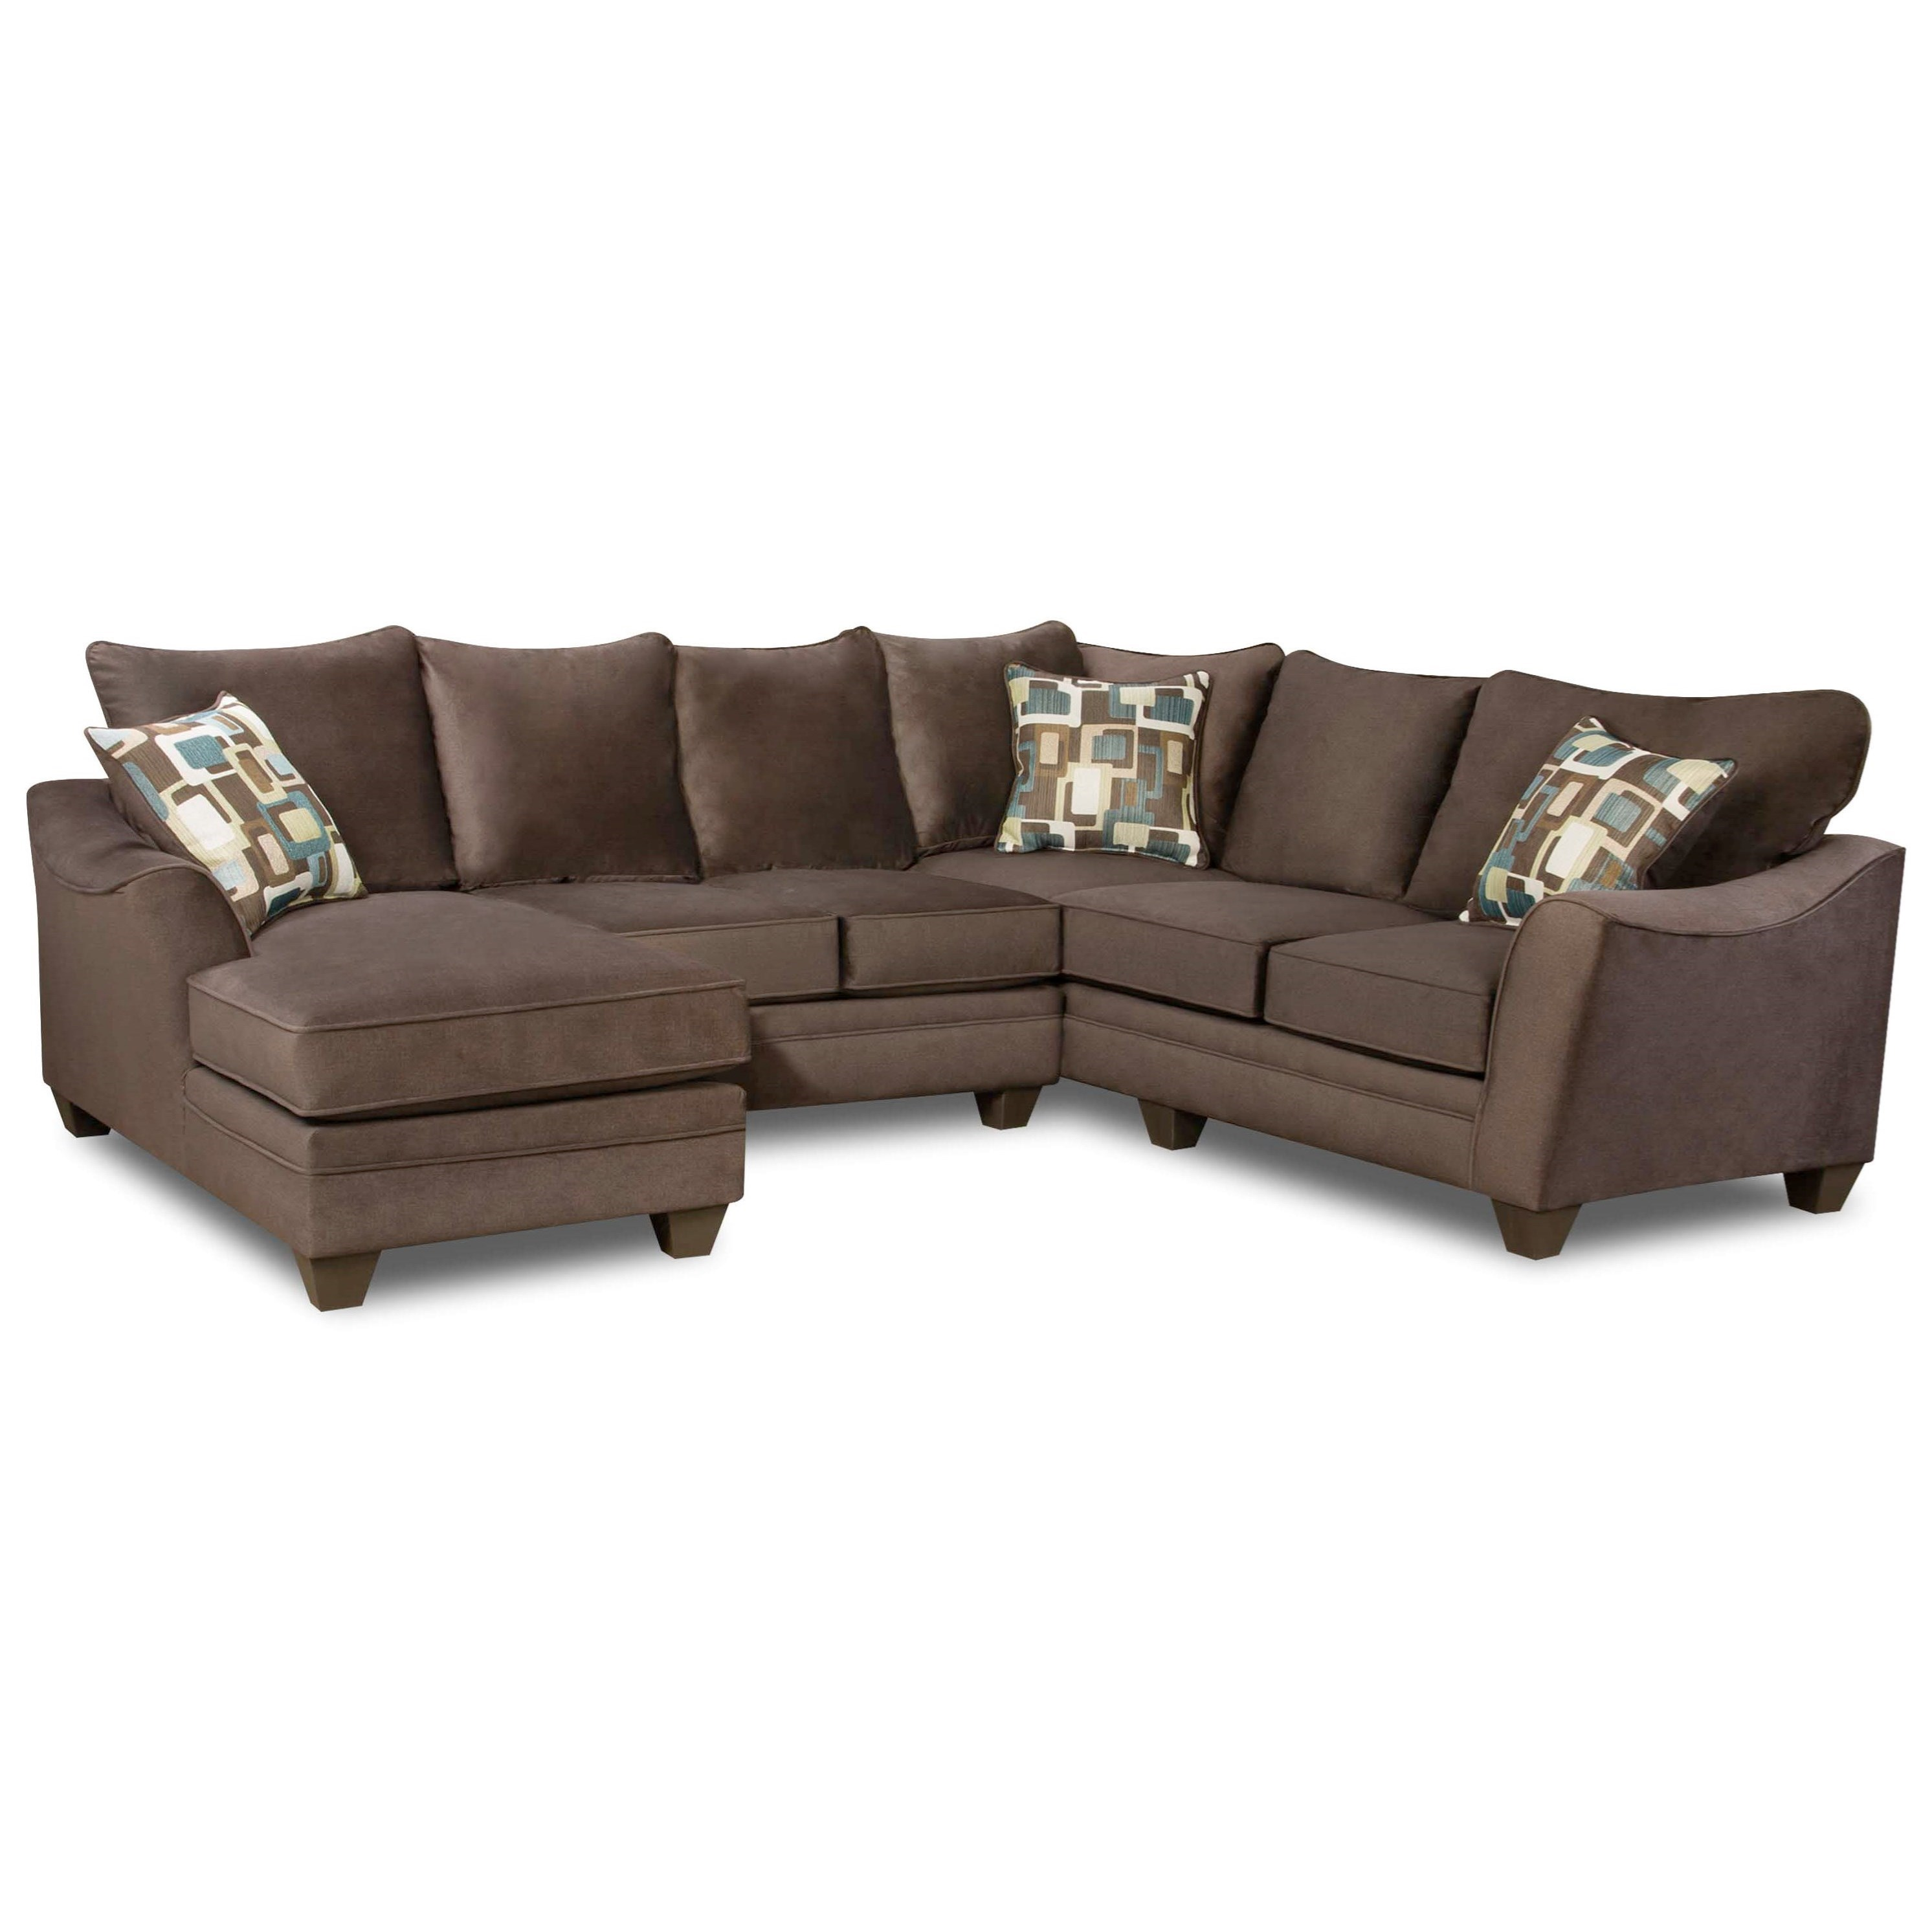 American Furniture 3810 Sectional Sofa with 5 Seats - Item Number: 3812+22+40-4041